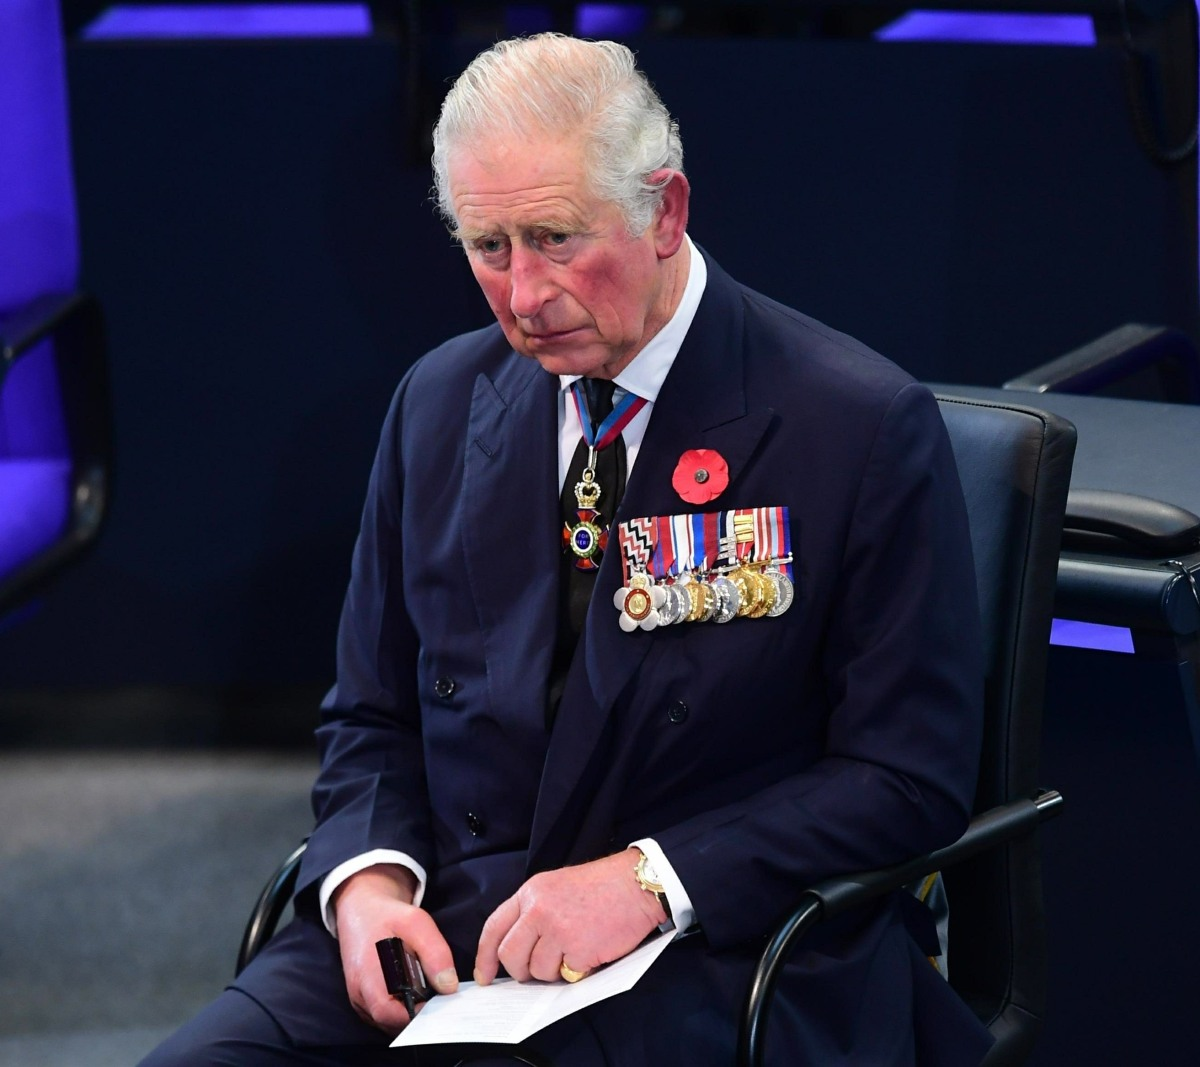 Prince Charles And Camilla visit Berlin To Attend National Mourning Day Events